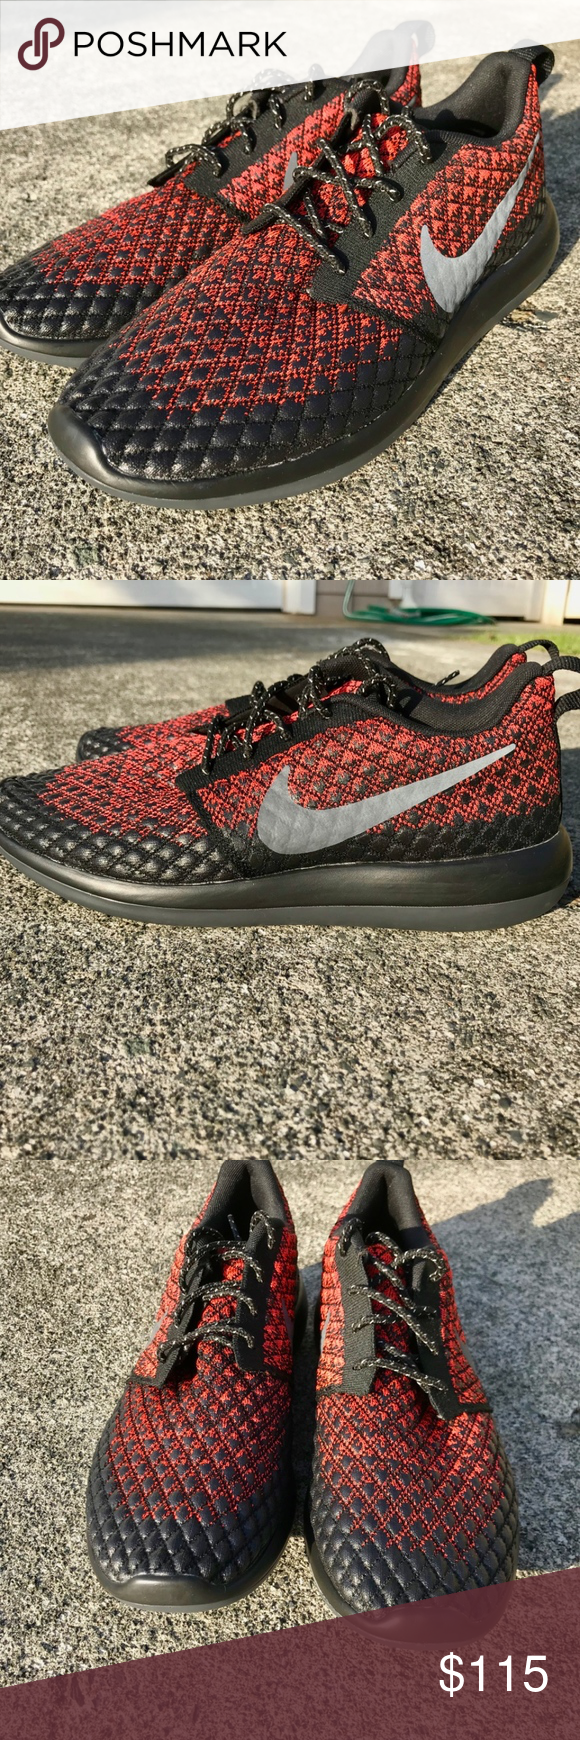 new style 6e79d cf7dc Nike Roshe Two Flyknit 365 Lifestyle Shoe The popular Nike Roshe Two  stylized in crimson and black. Style code  859535-600 Color  Crimson Grey Black  Nike ...